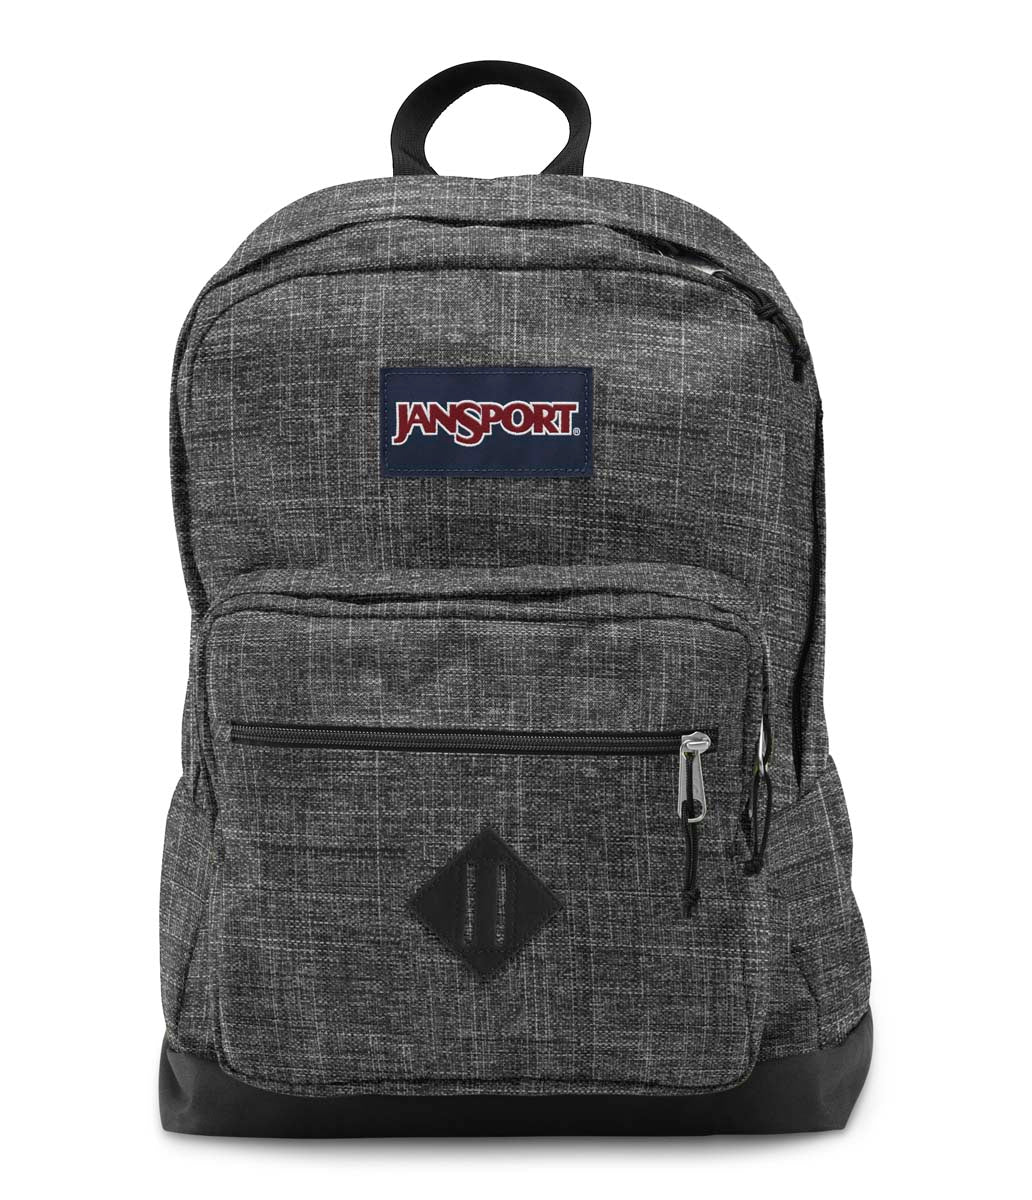 Jansport-city scout click for more color choice